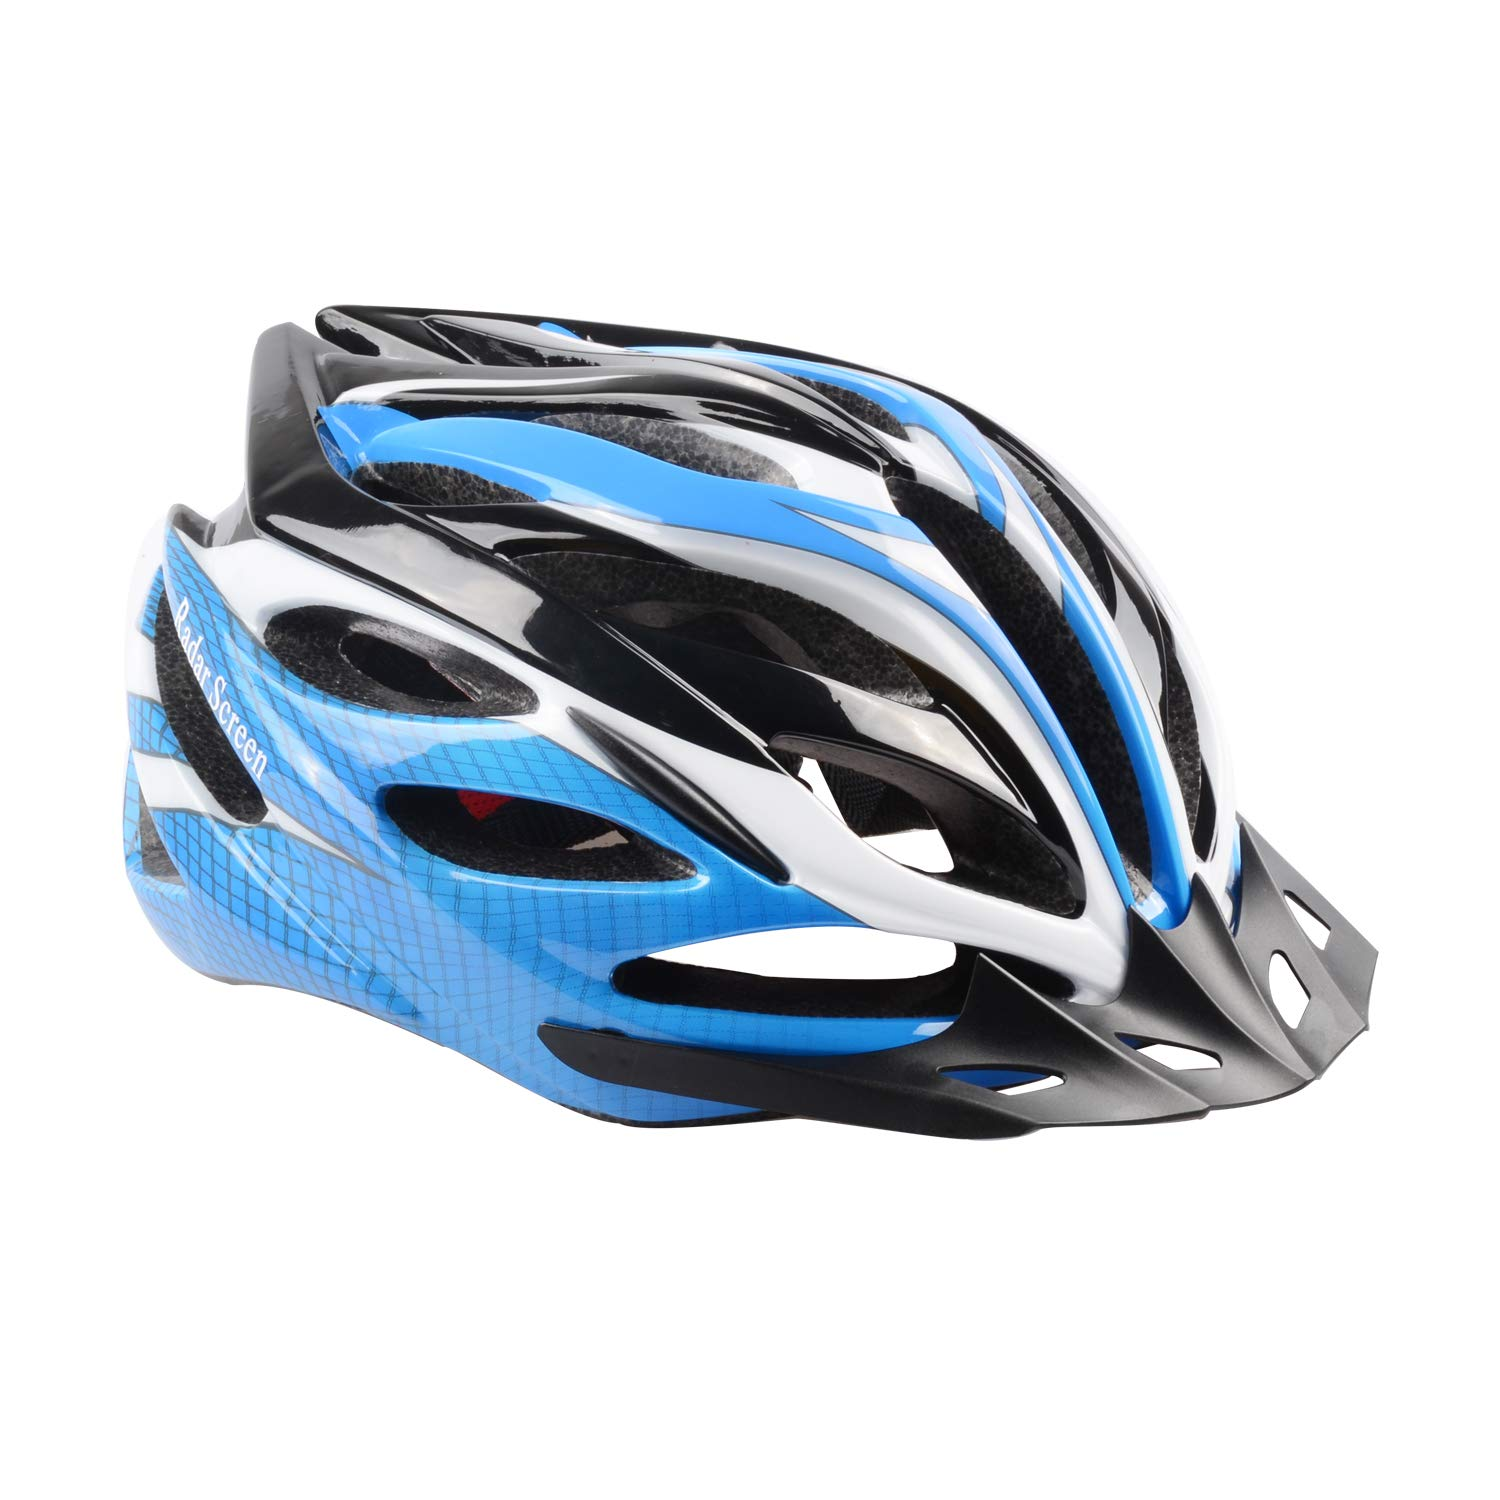 Mountain Bike Helmet with CPSC Safety Certified Ultra Lightweight Cycling Helmet with Adjustable Thrasher for Adult Radar Screen Bicycle Helmet